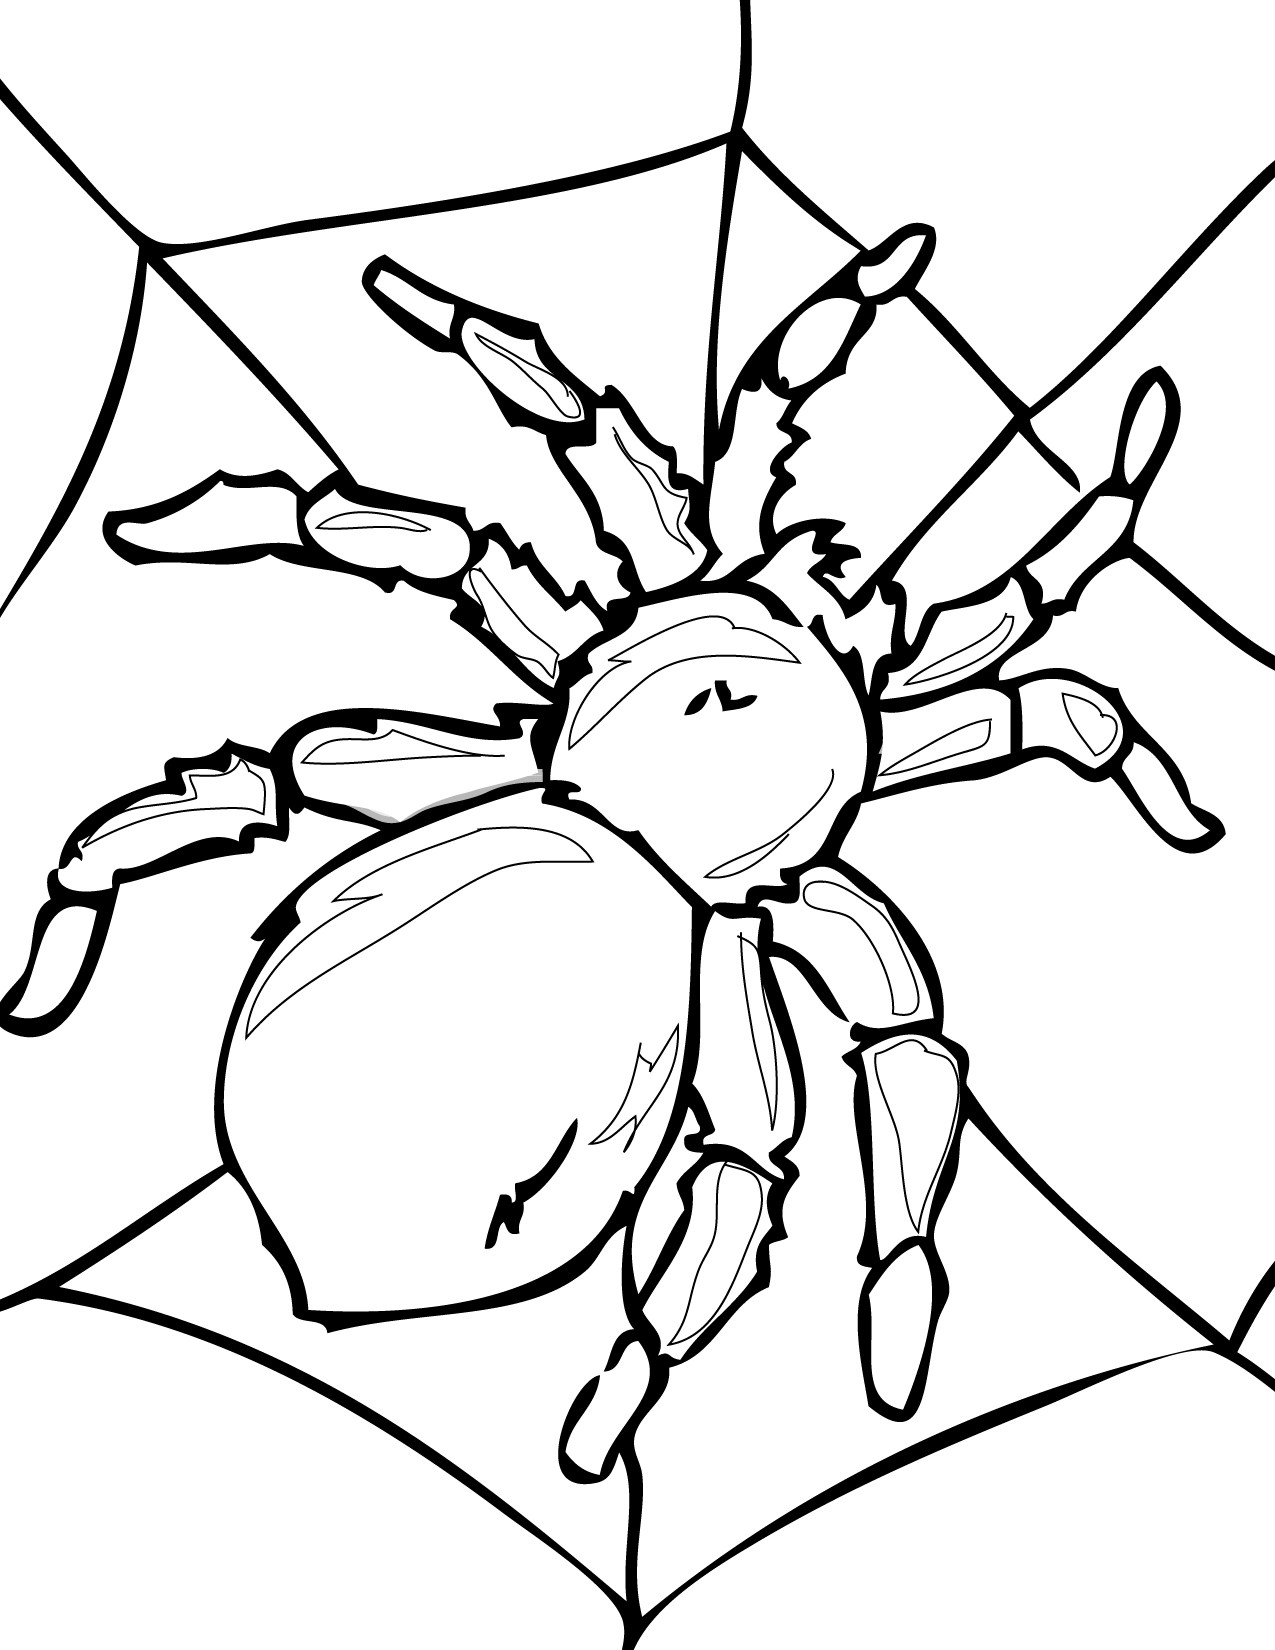 spider coloring pages for kids 01